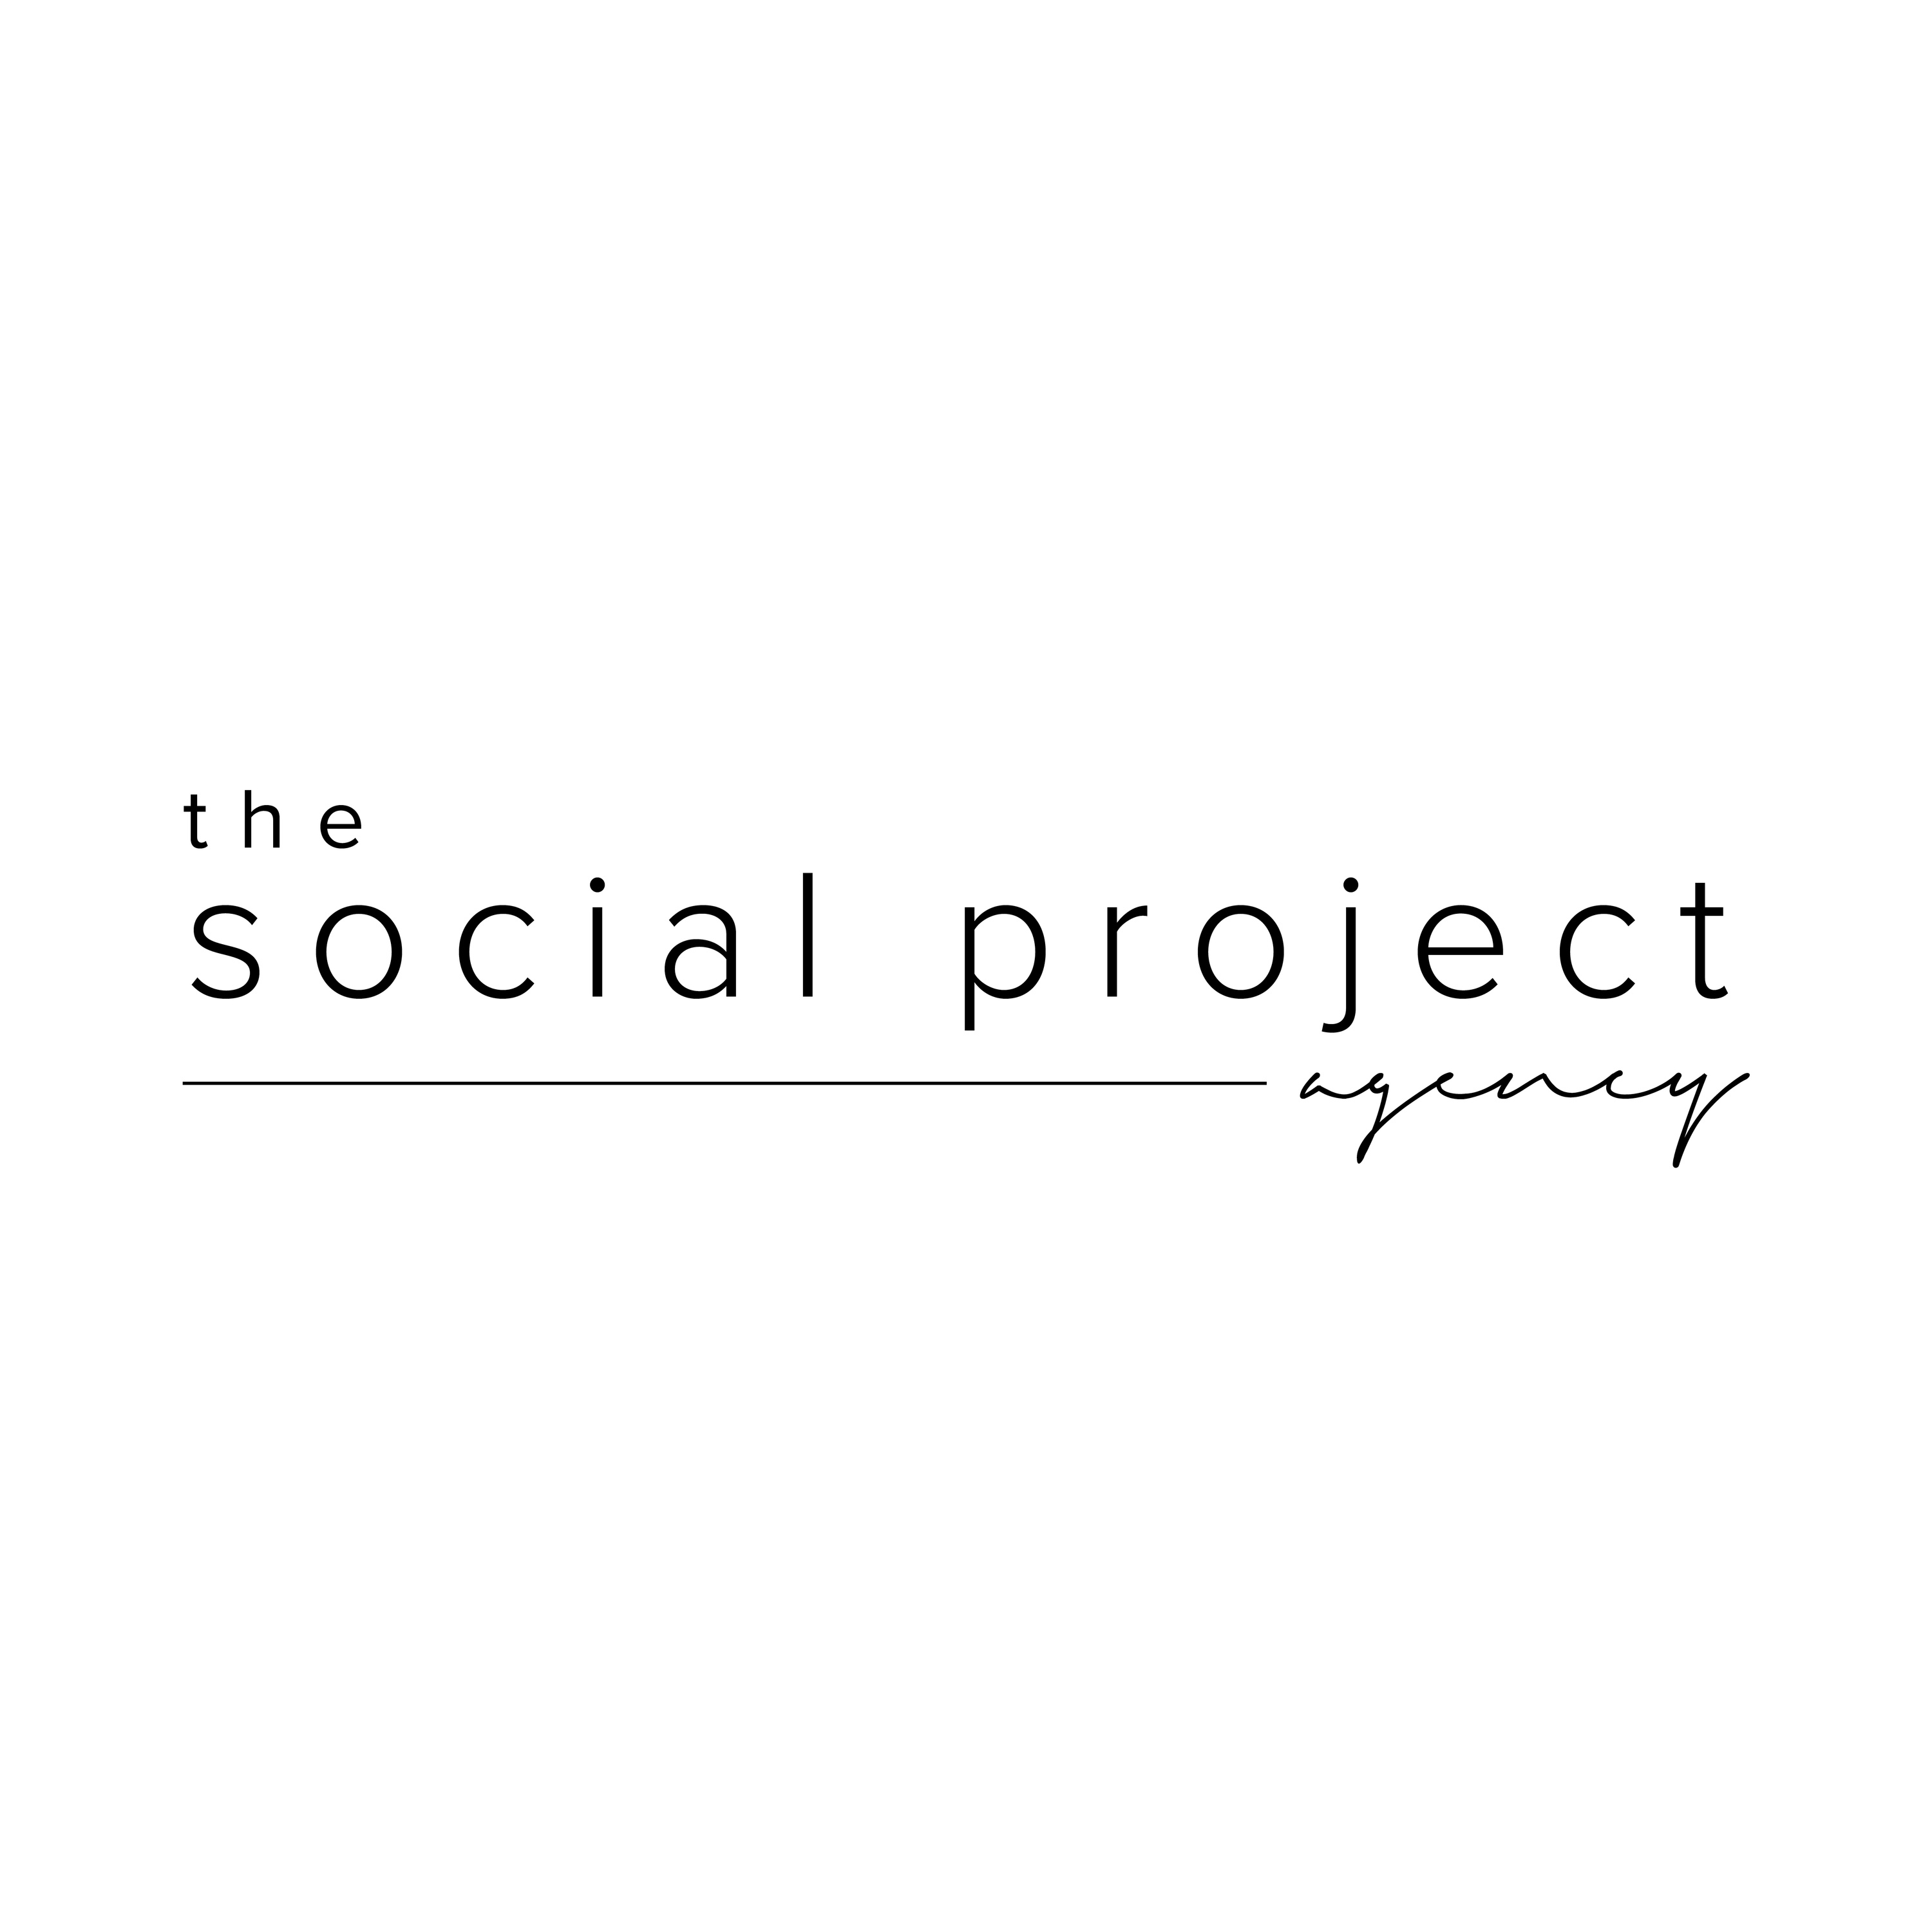 The Social Project Agency